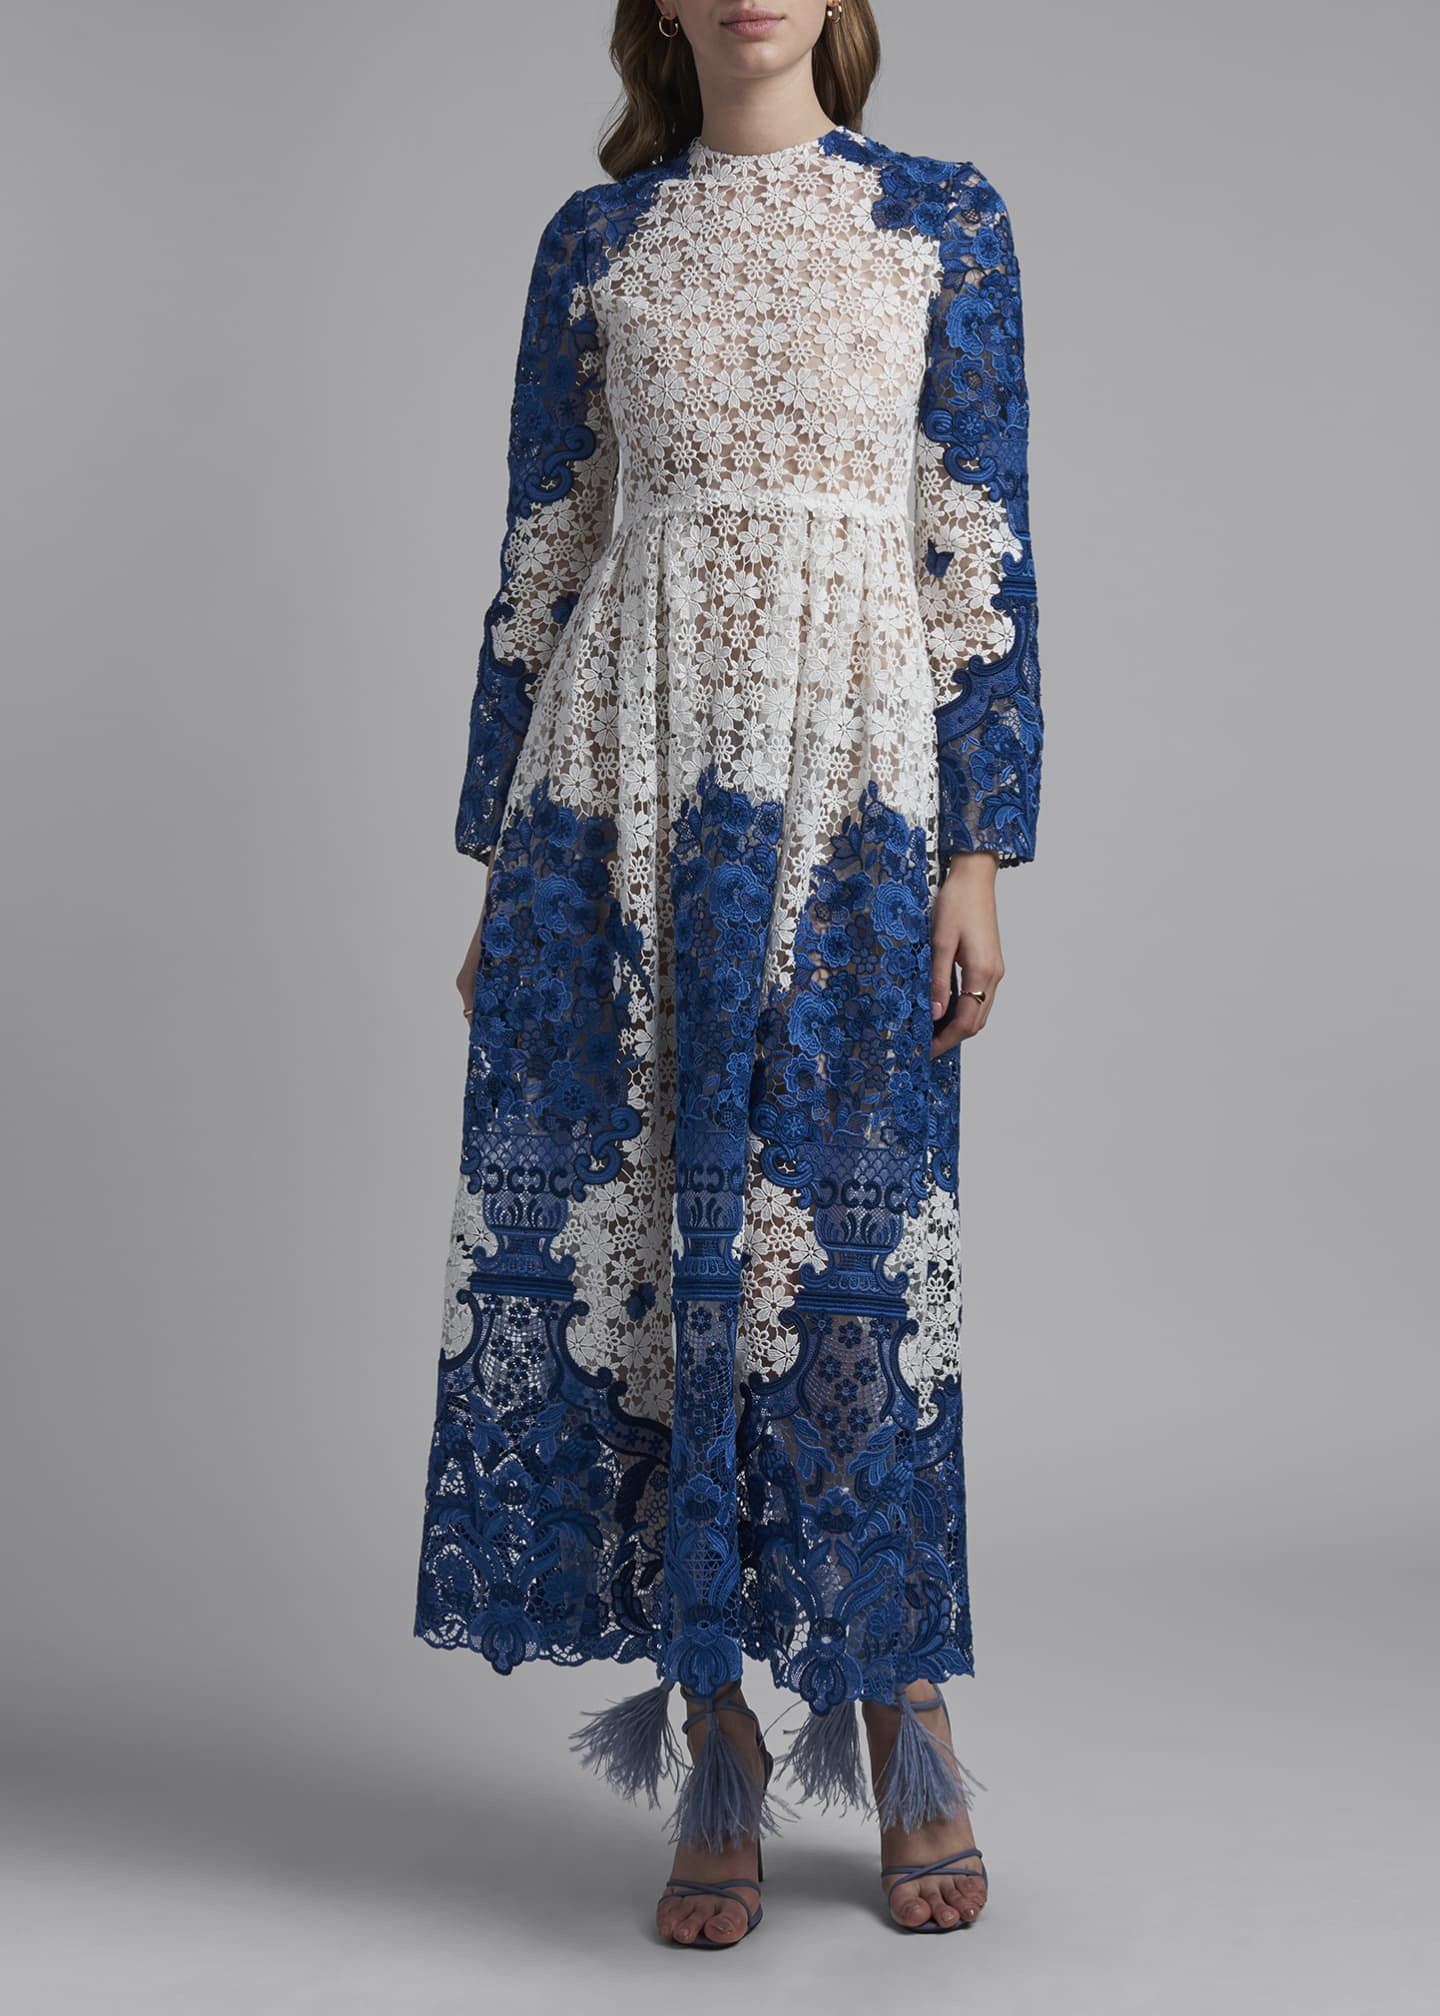 Valentino Long Sleeve Embroidered Lace Maxi Dress Bergdorf Goodman Lace Maxi Dress Lace Maxi Embroidered Lace [ 2016 x 1440 Pixel ]